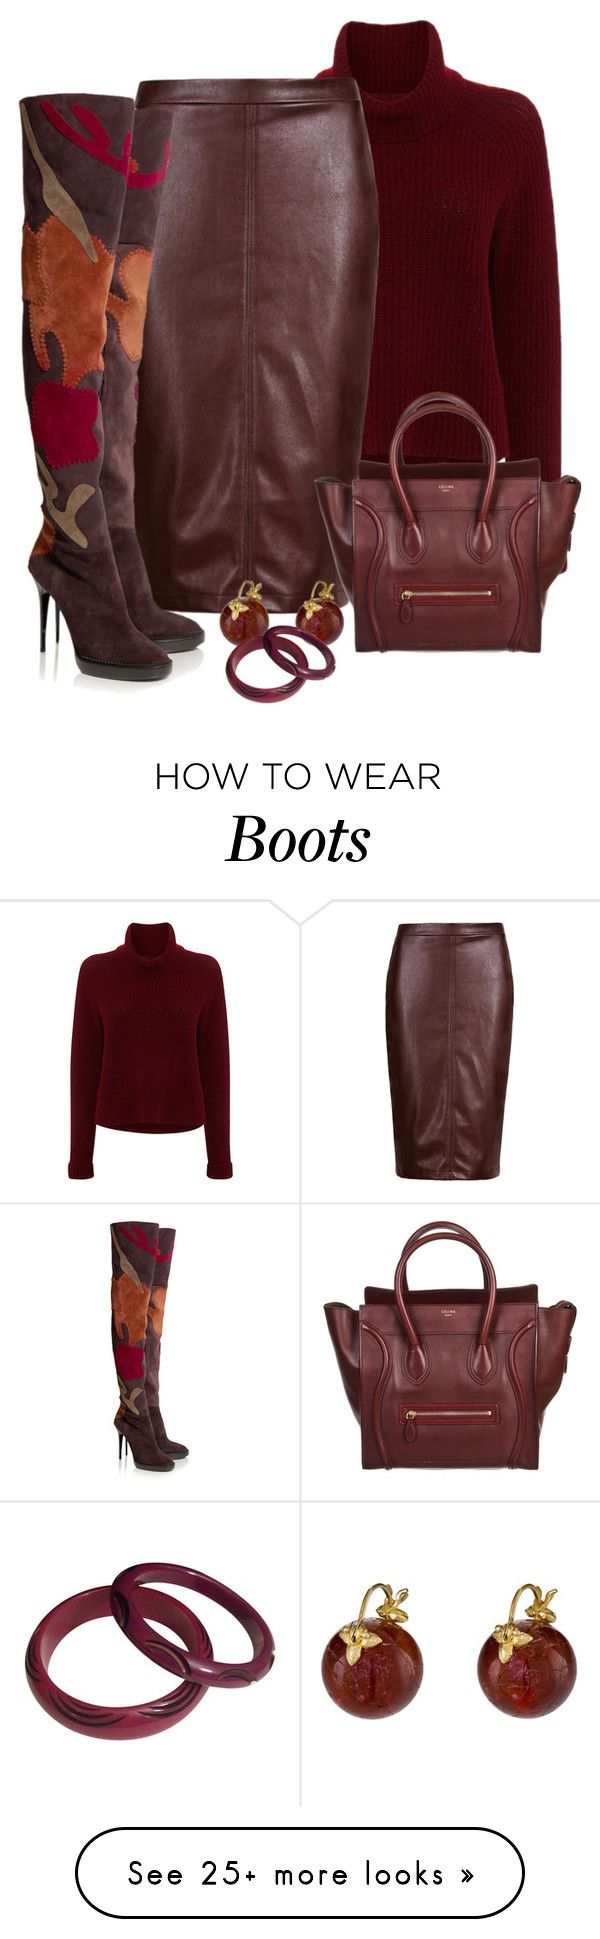 """""""Suede"""" by terry-tlc on Polyvore featuring 360 Sweater, Burberry, CÉLINE and Gabrielle Sanchez"""